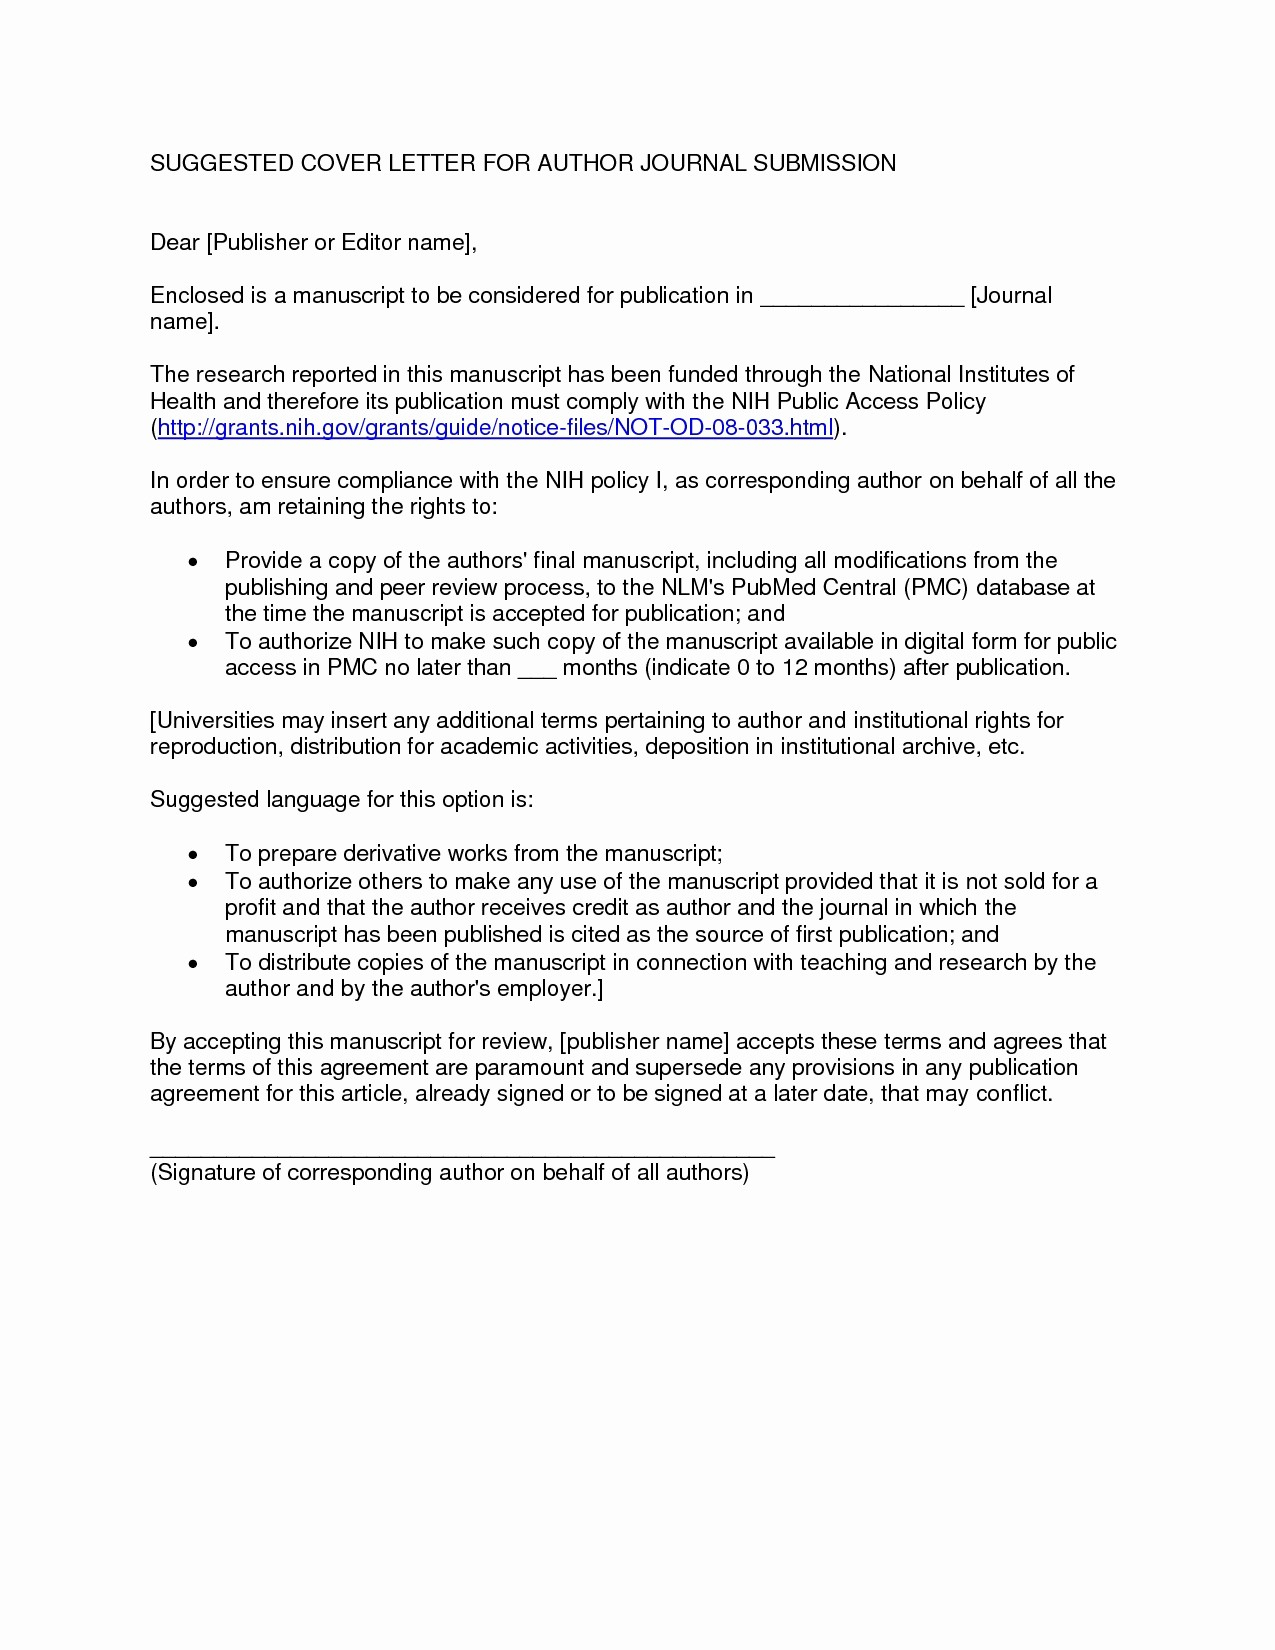 Free Breach Of Contract Letter Template - Employment Agreement Sample Pdf format